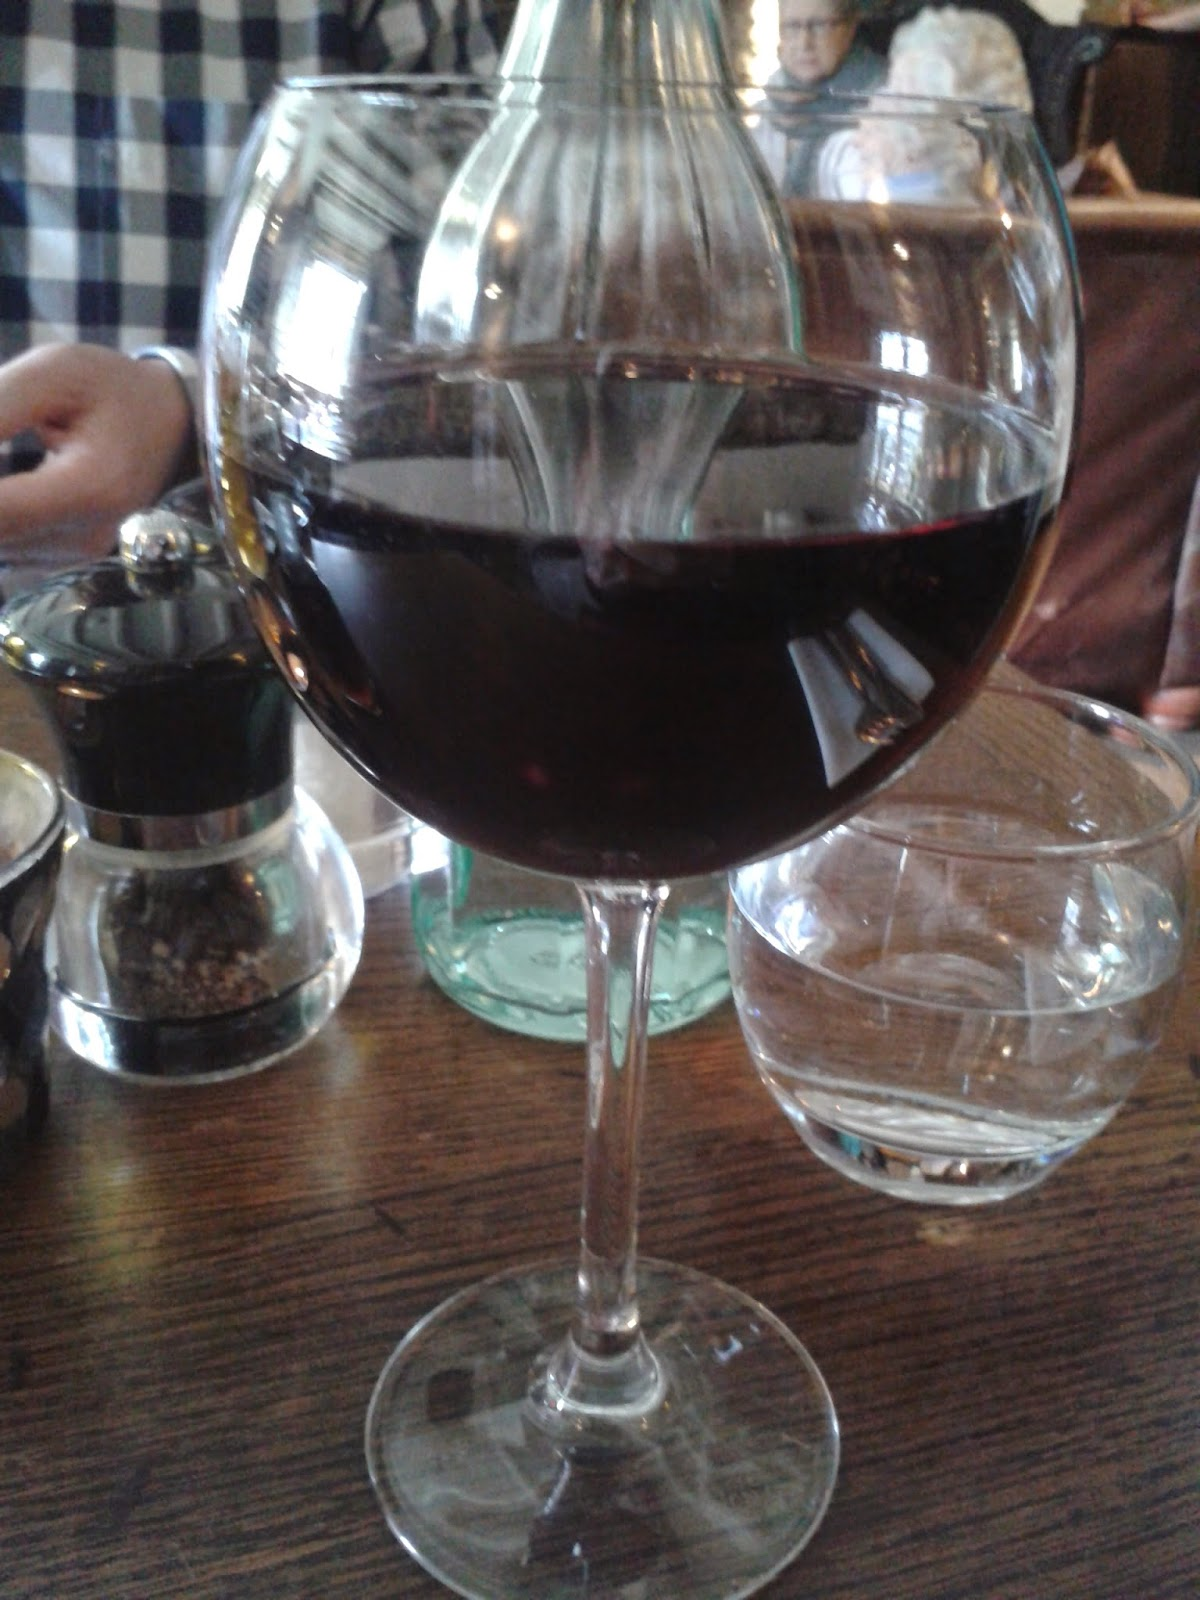 Large glass of Malbec wine - alcohol safety - motherdistracted.co.uk